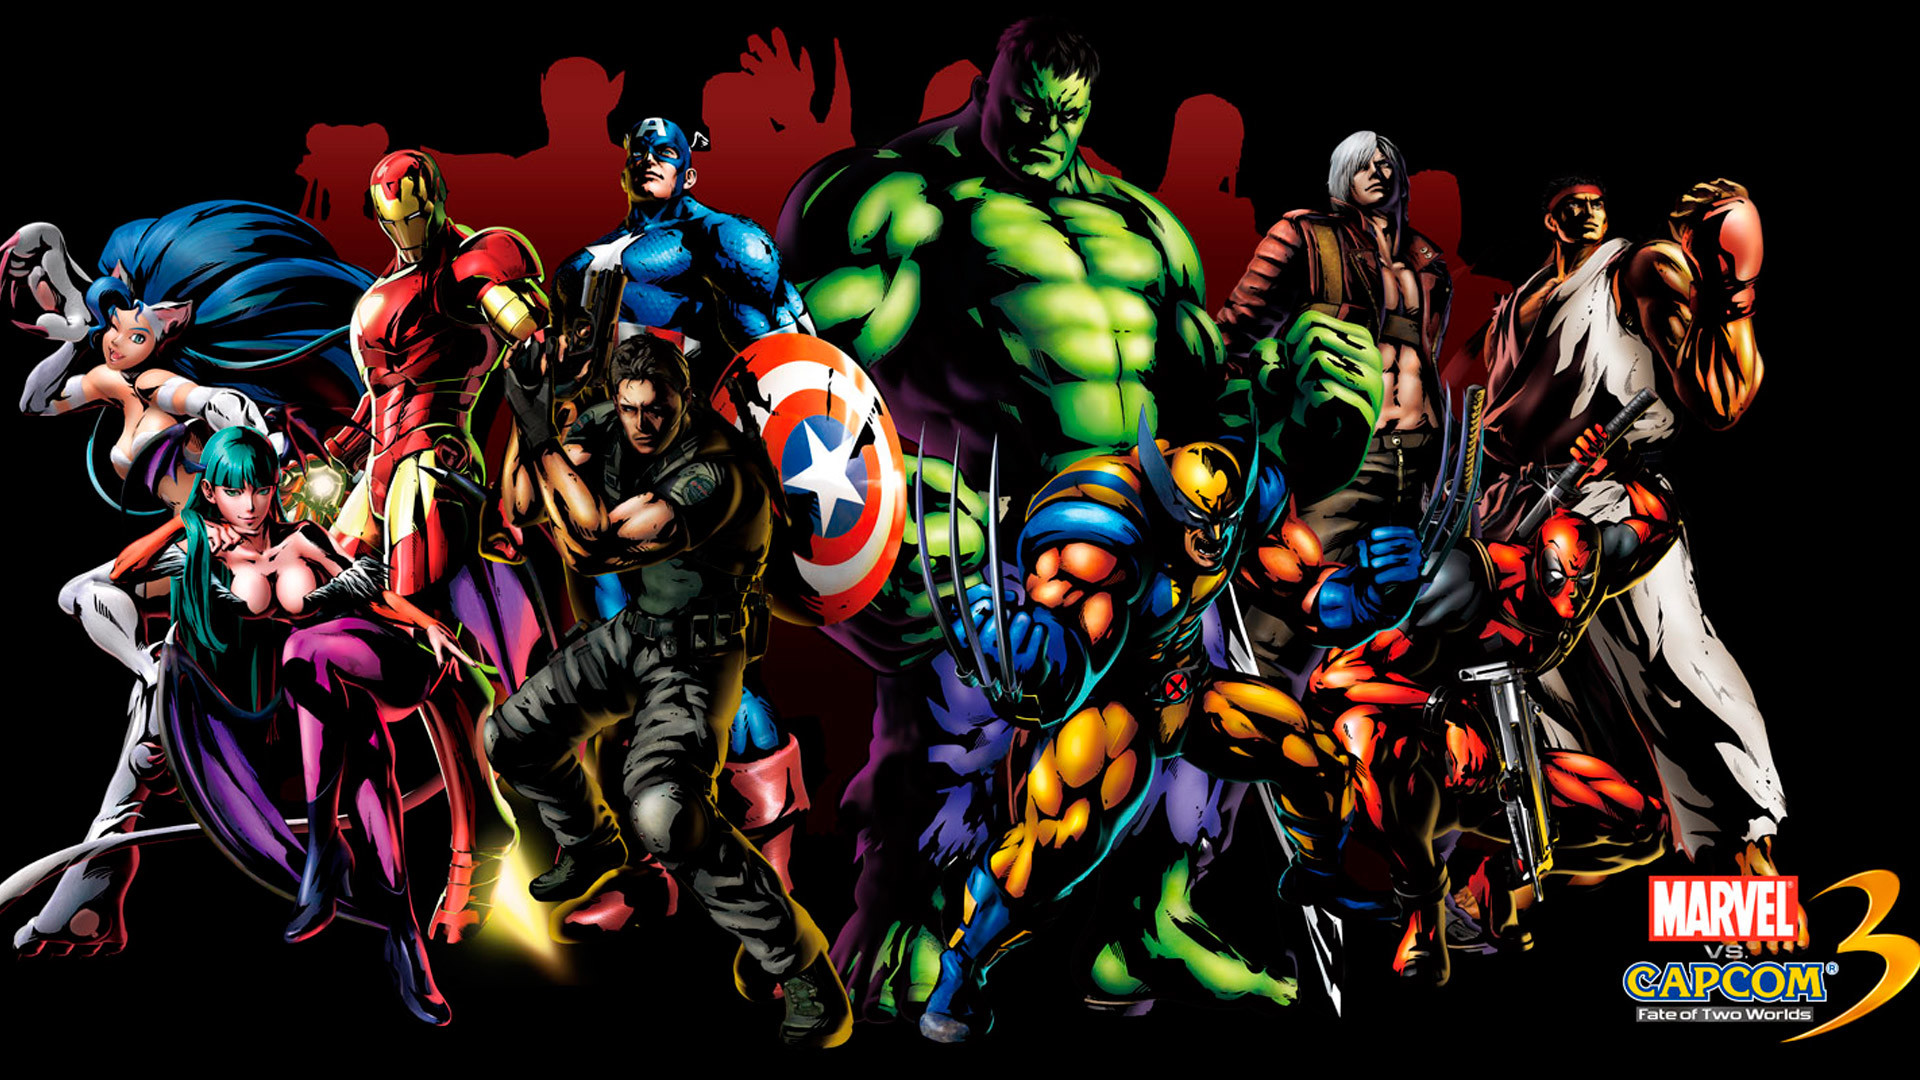 Marvel screensavers and wallpaper 74 images 1920x1080 marvel heroes wallpaper background pc voltagebd Image collections